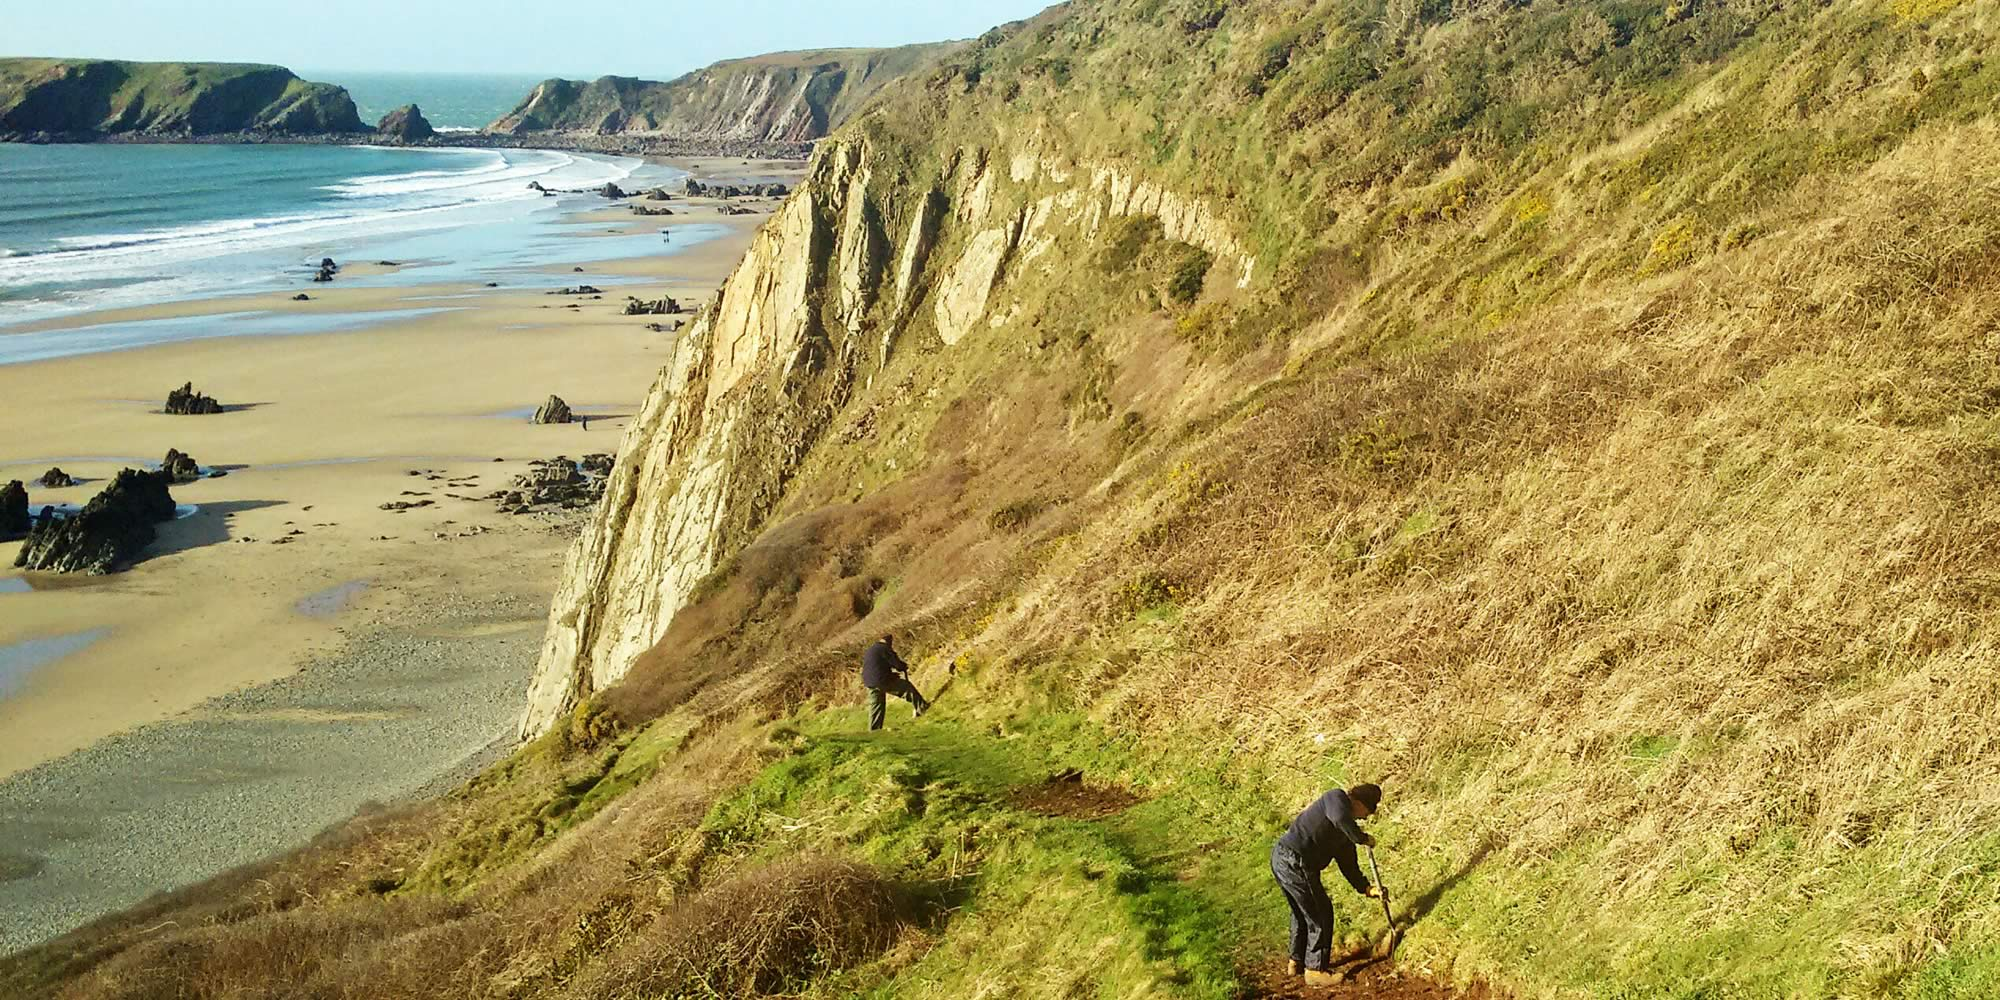 People with spades on a footpath along a high coastal cliff